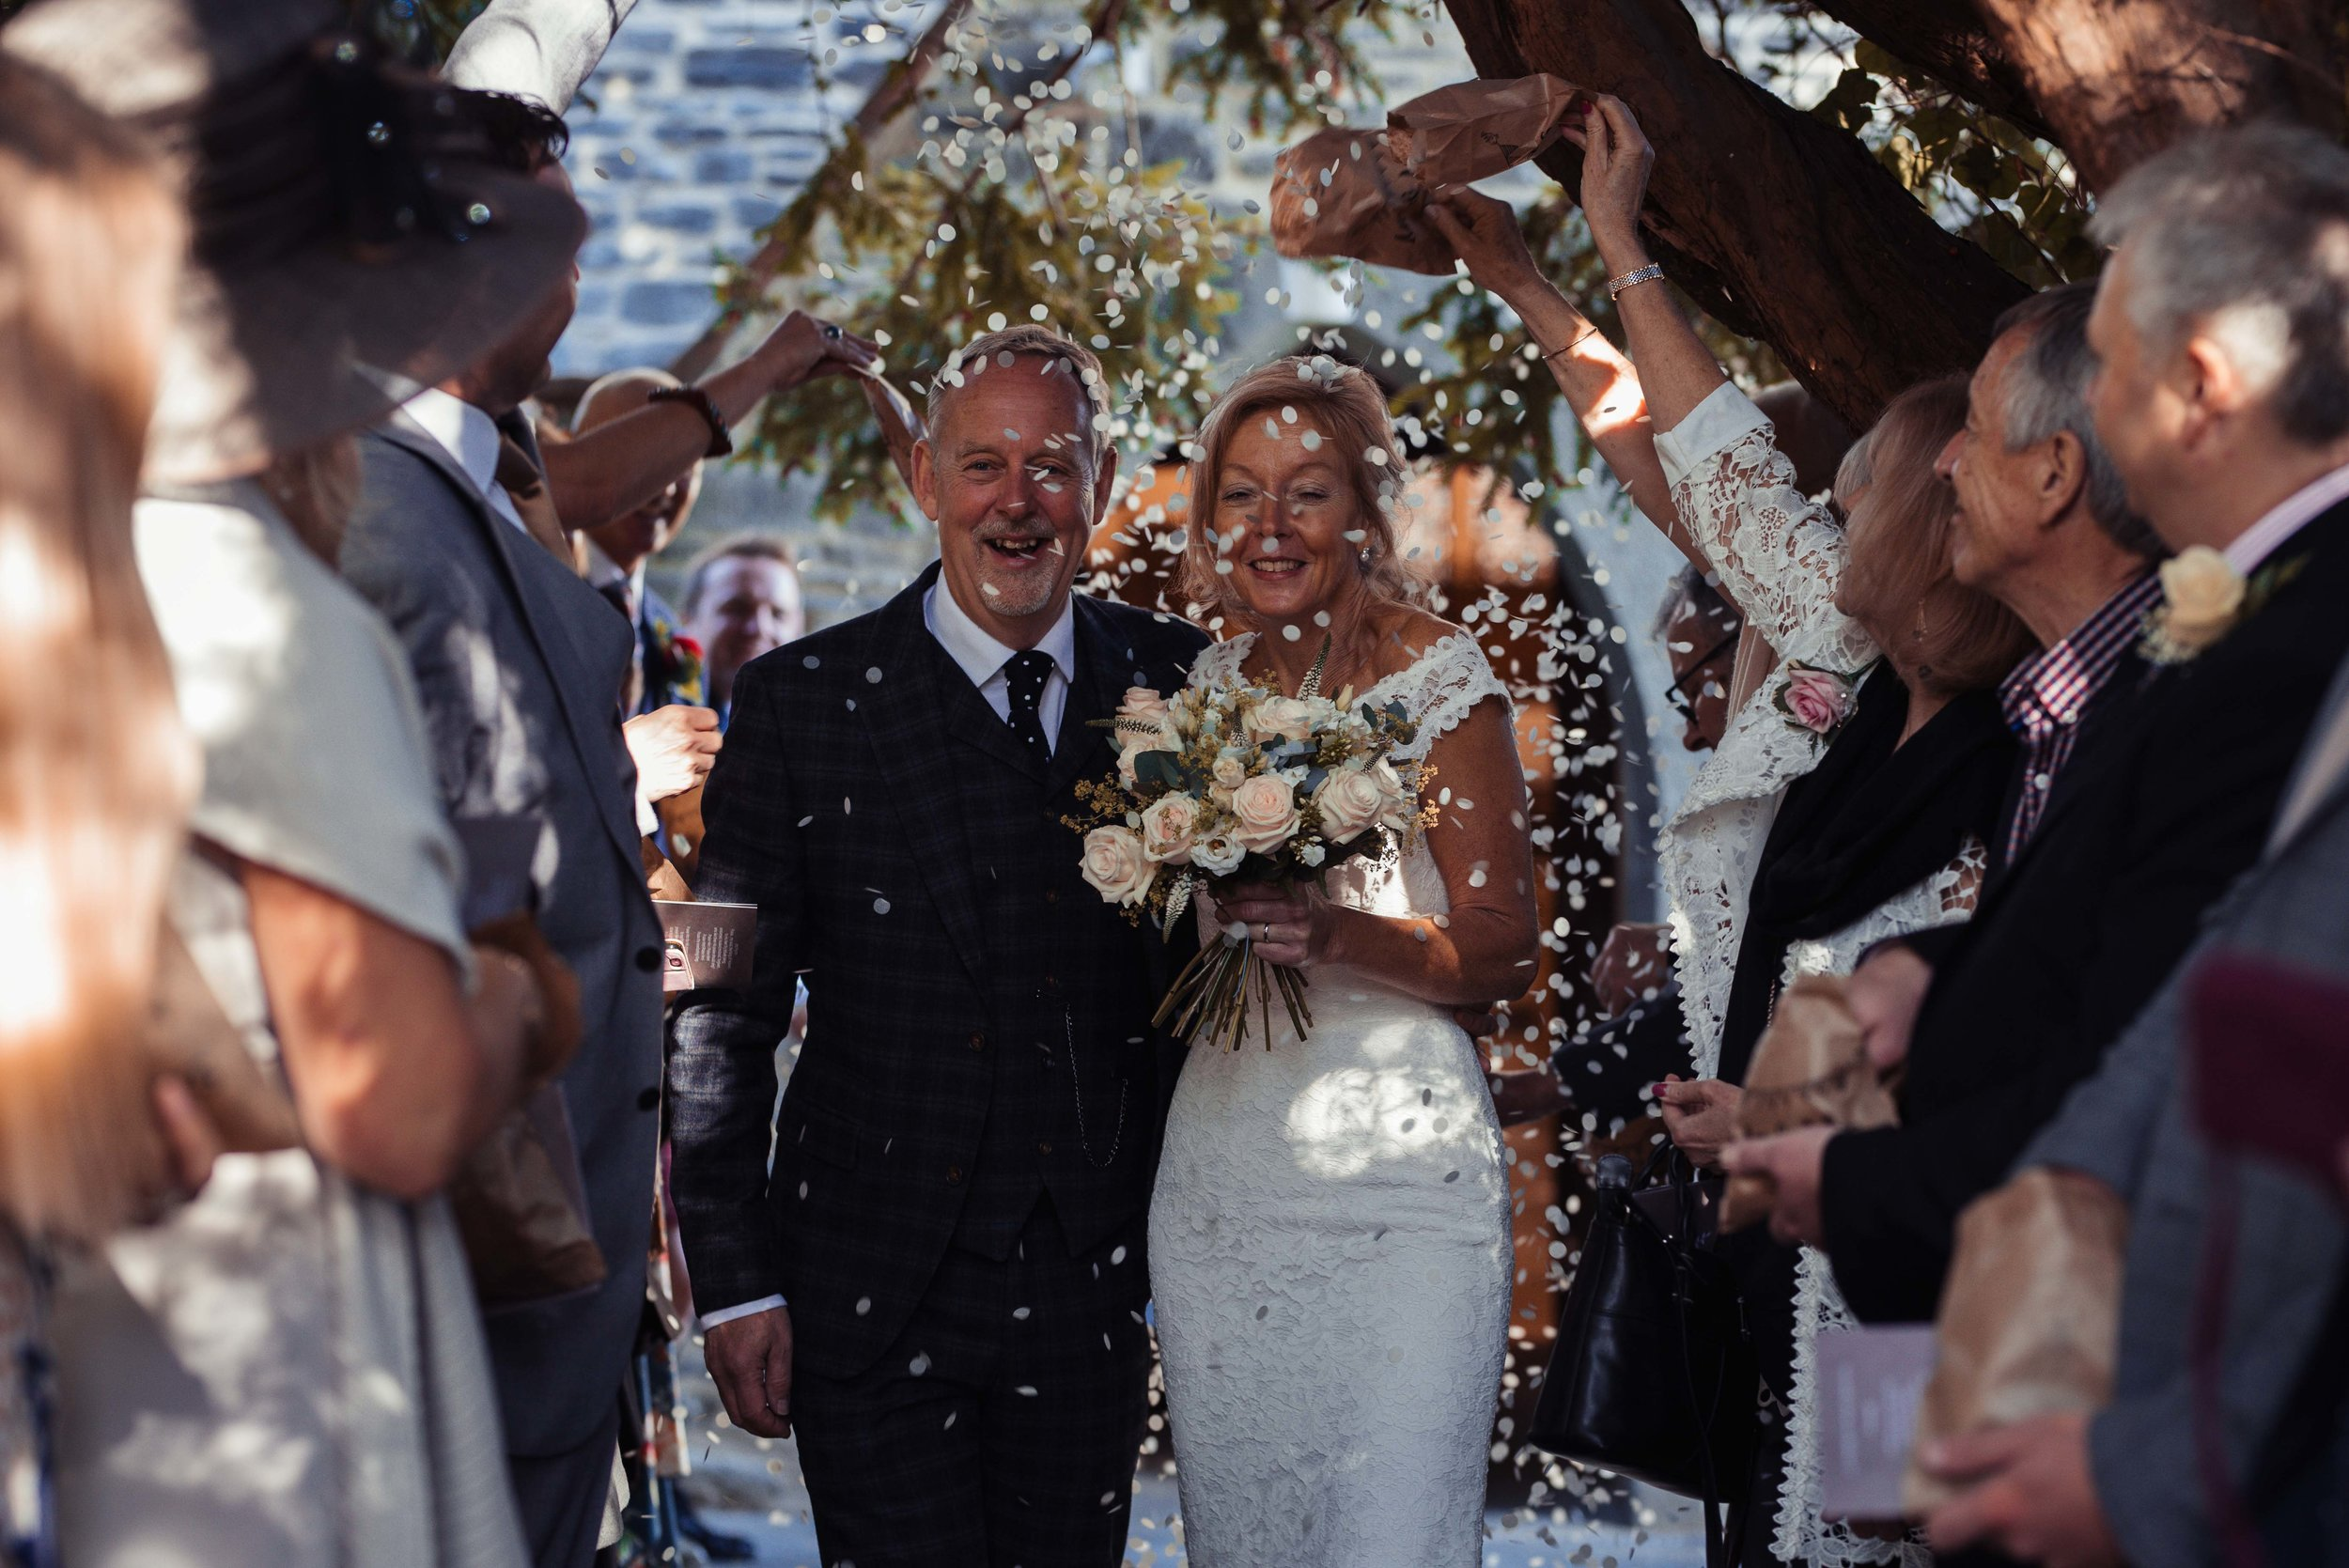 The bride and groom walk through a big sea of confetti outside their Cumbrian church